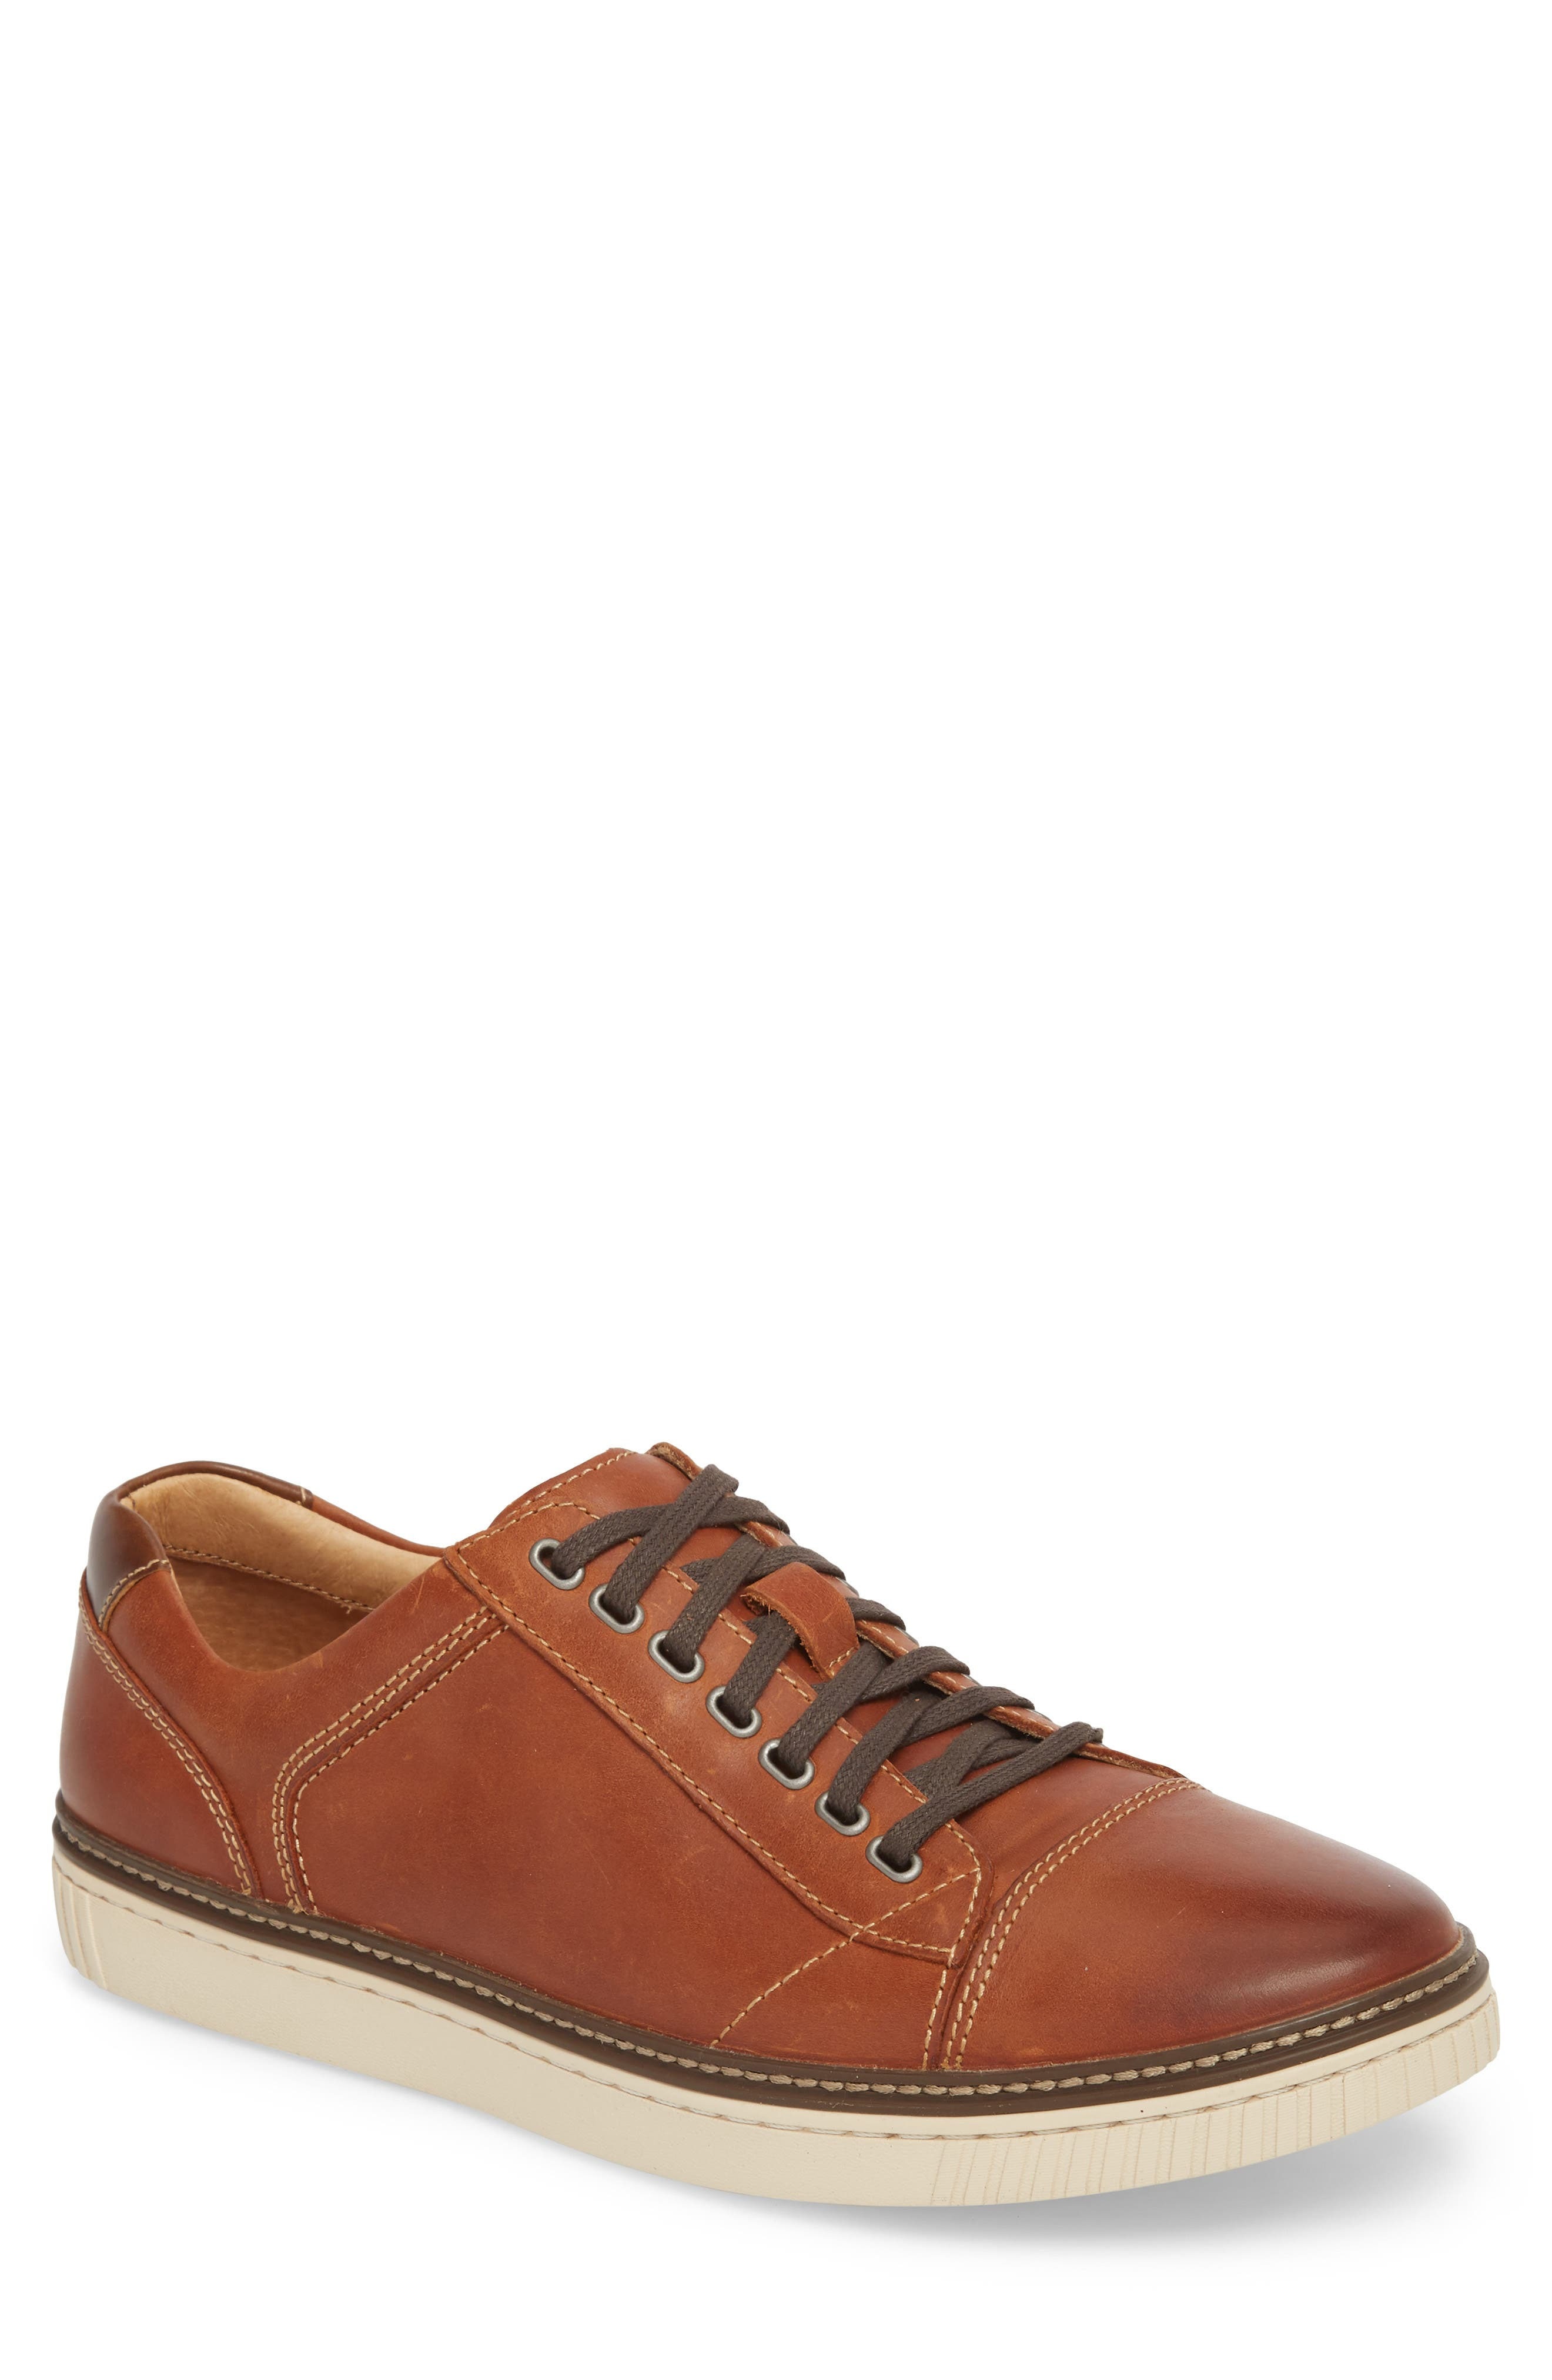 Wallace Low Top Sneaker,                             Main thumbnail 1, color,                             TAN NUBUCK